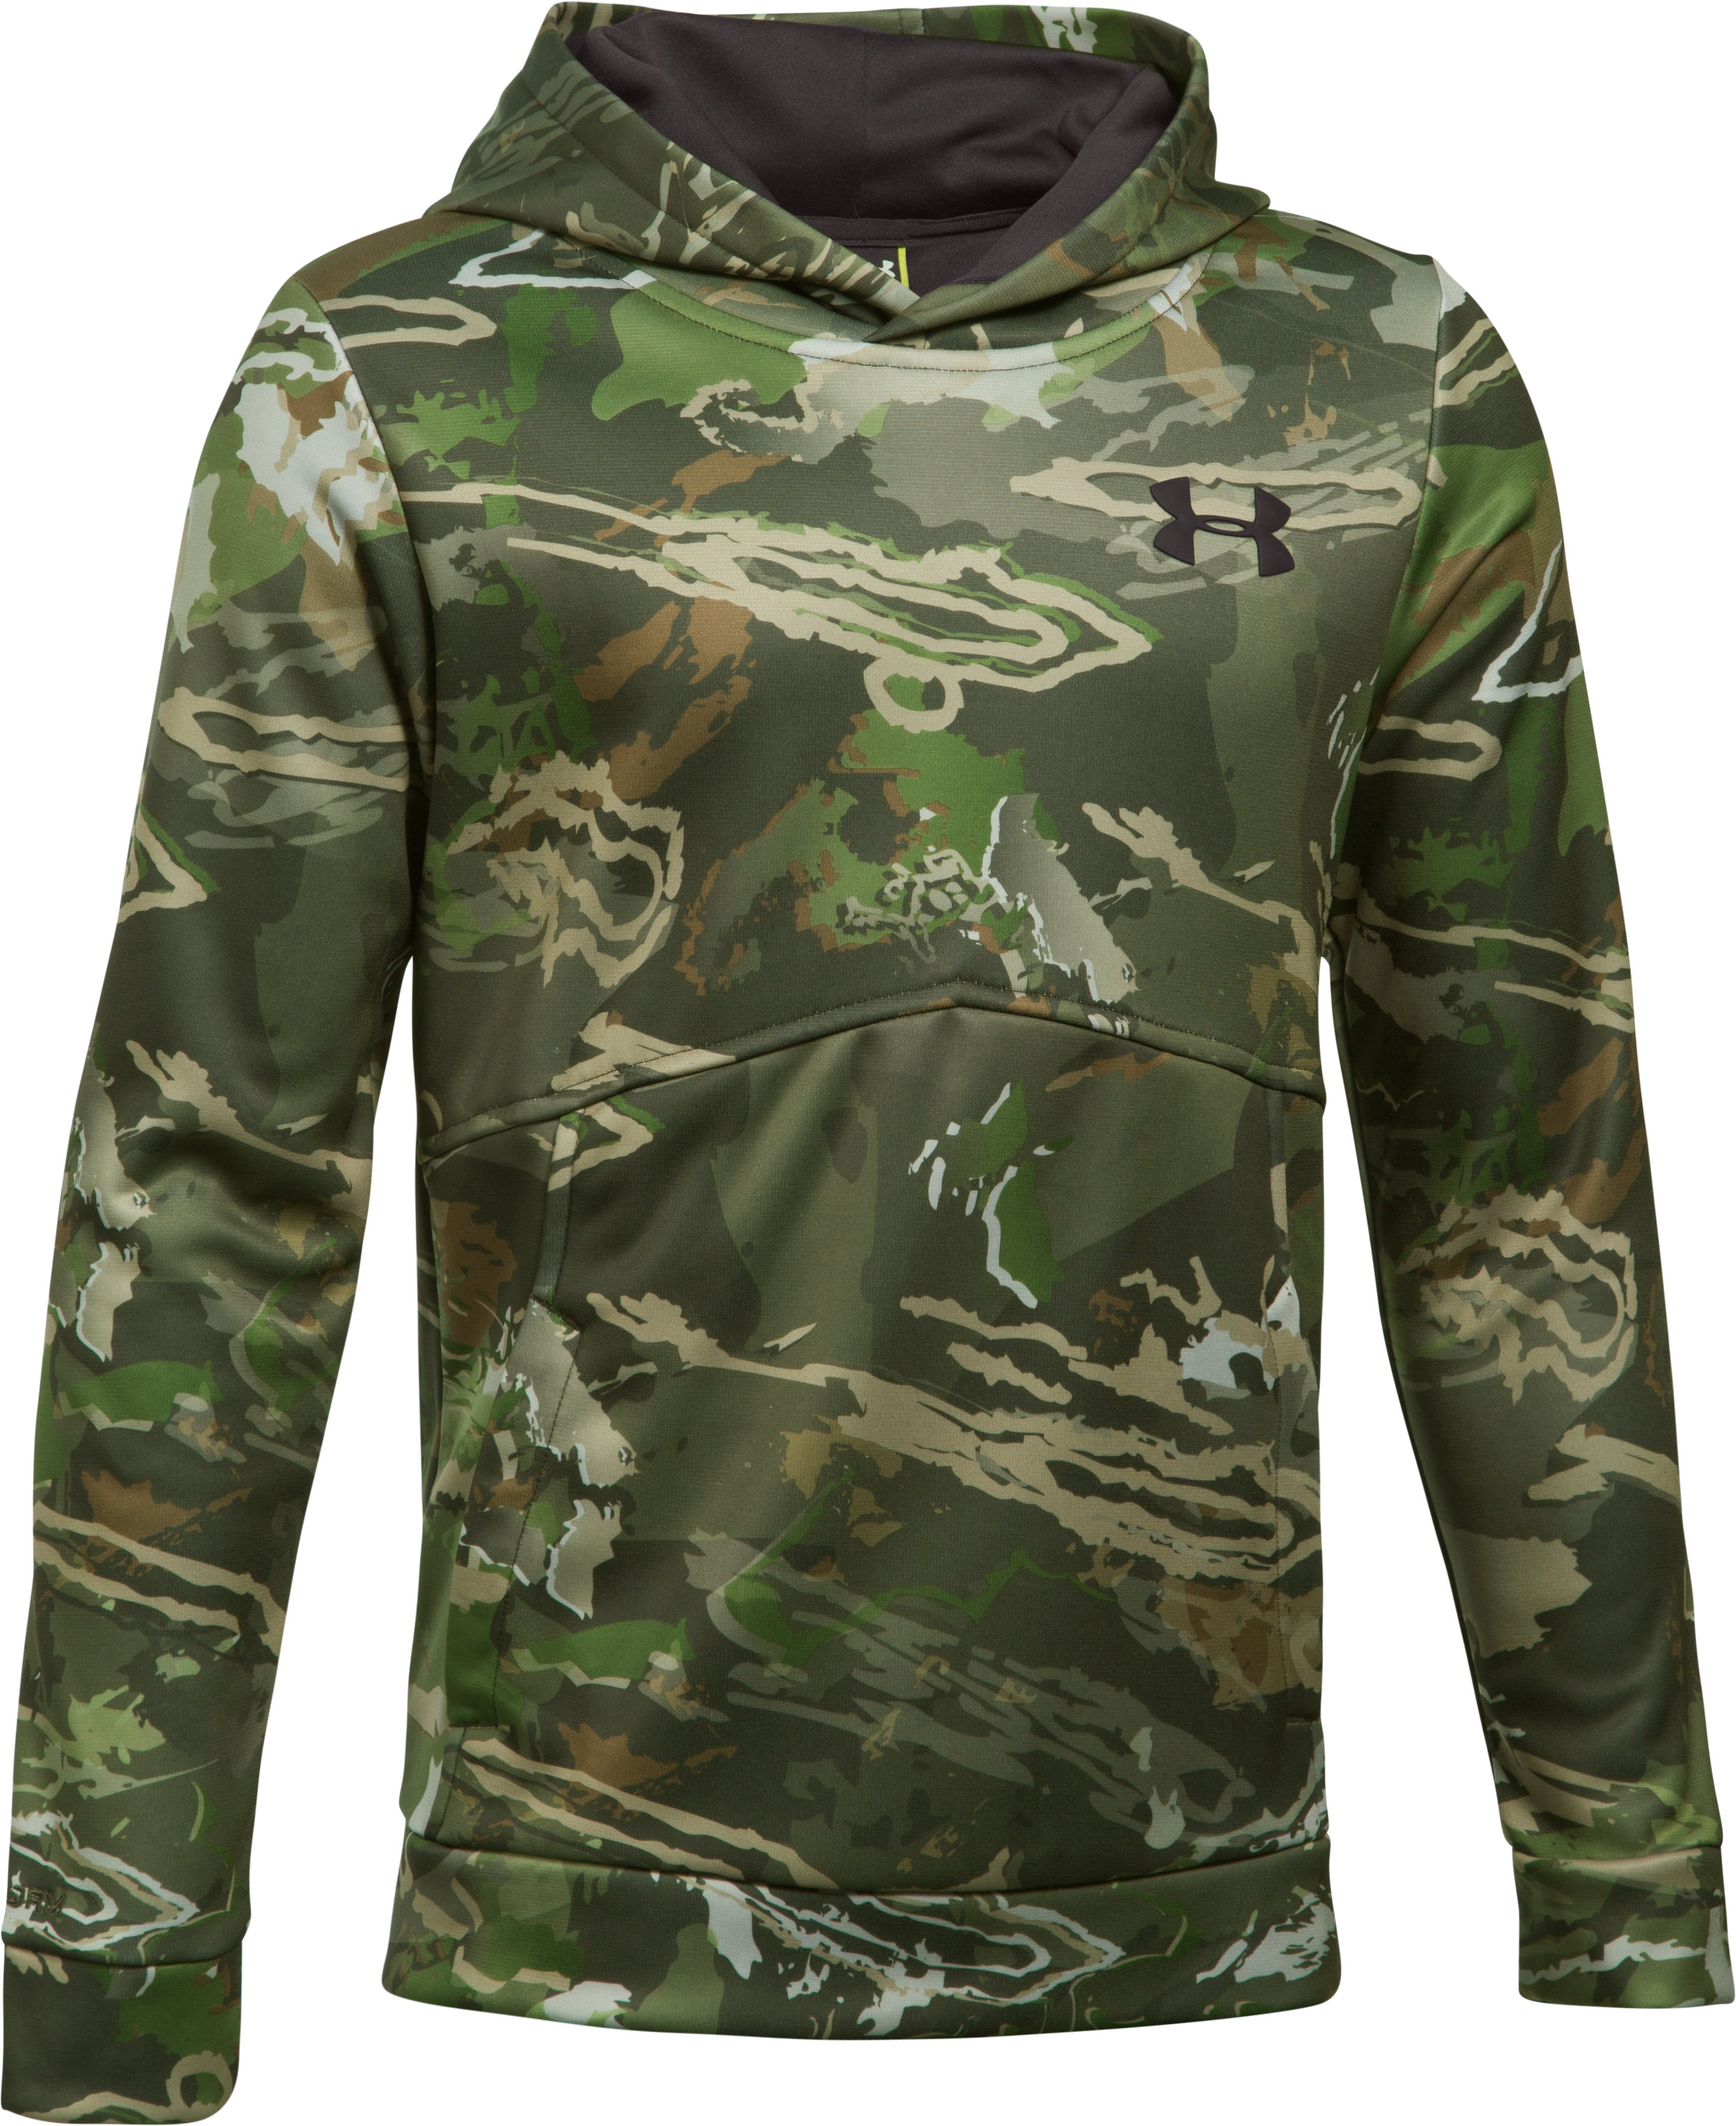 Boys' UA Logo Camo Hoodie, RIDGE REAPER® FOREST, undefined